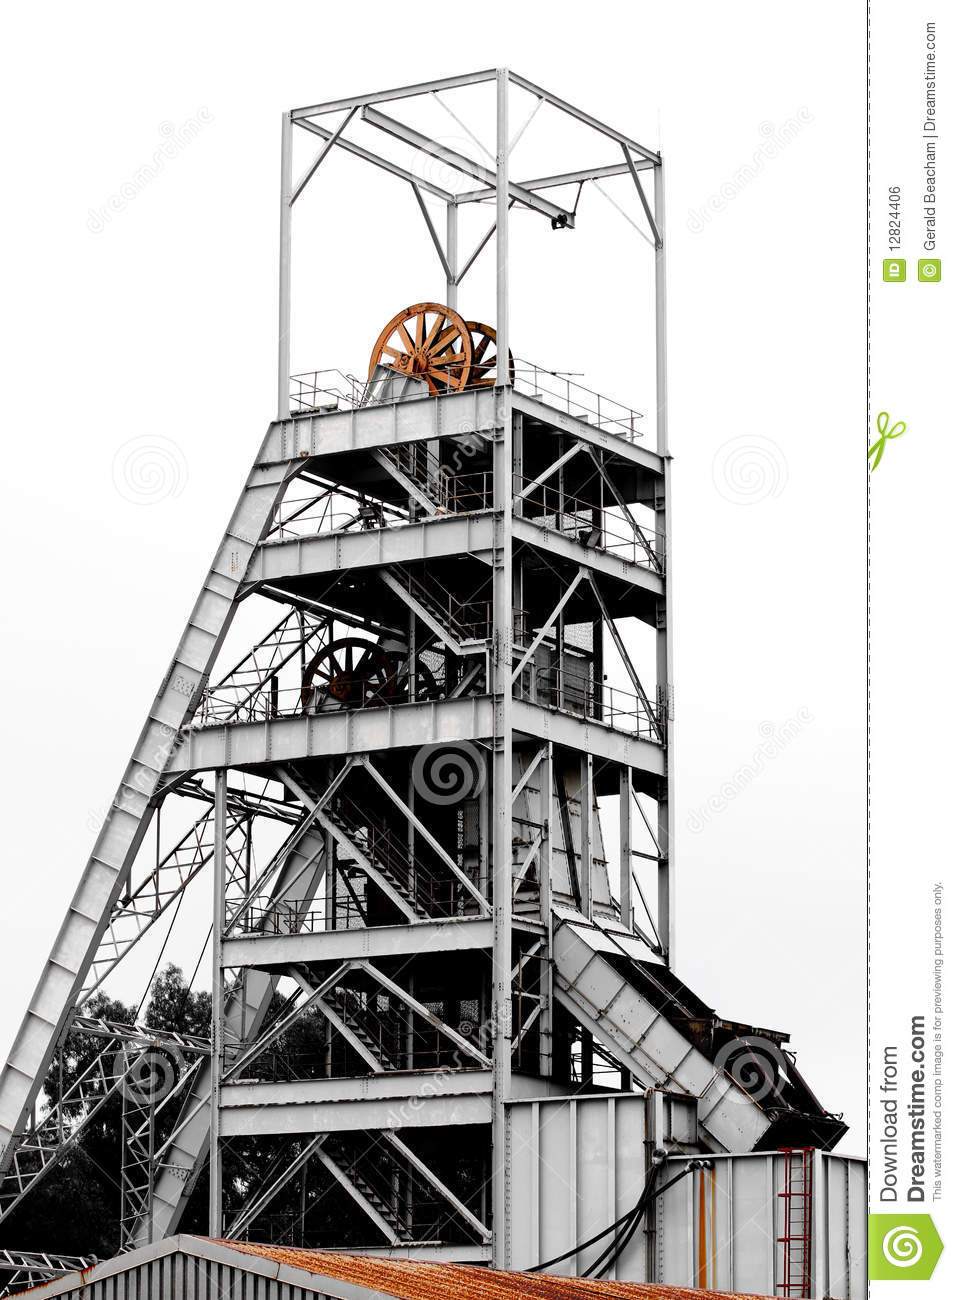 Mine Shaft Stock Photo  Image Of Gear  Gold  Cage  Retro